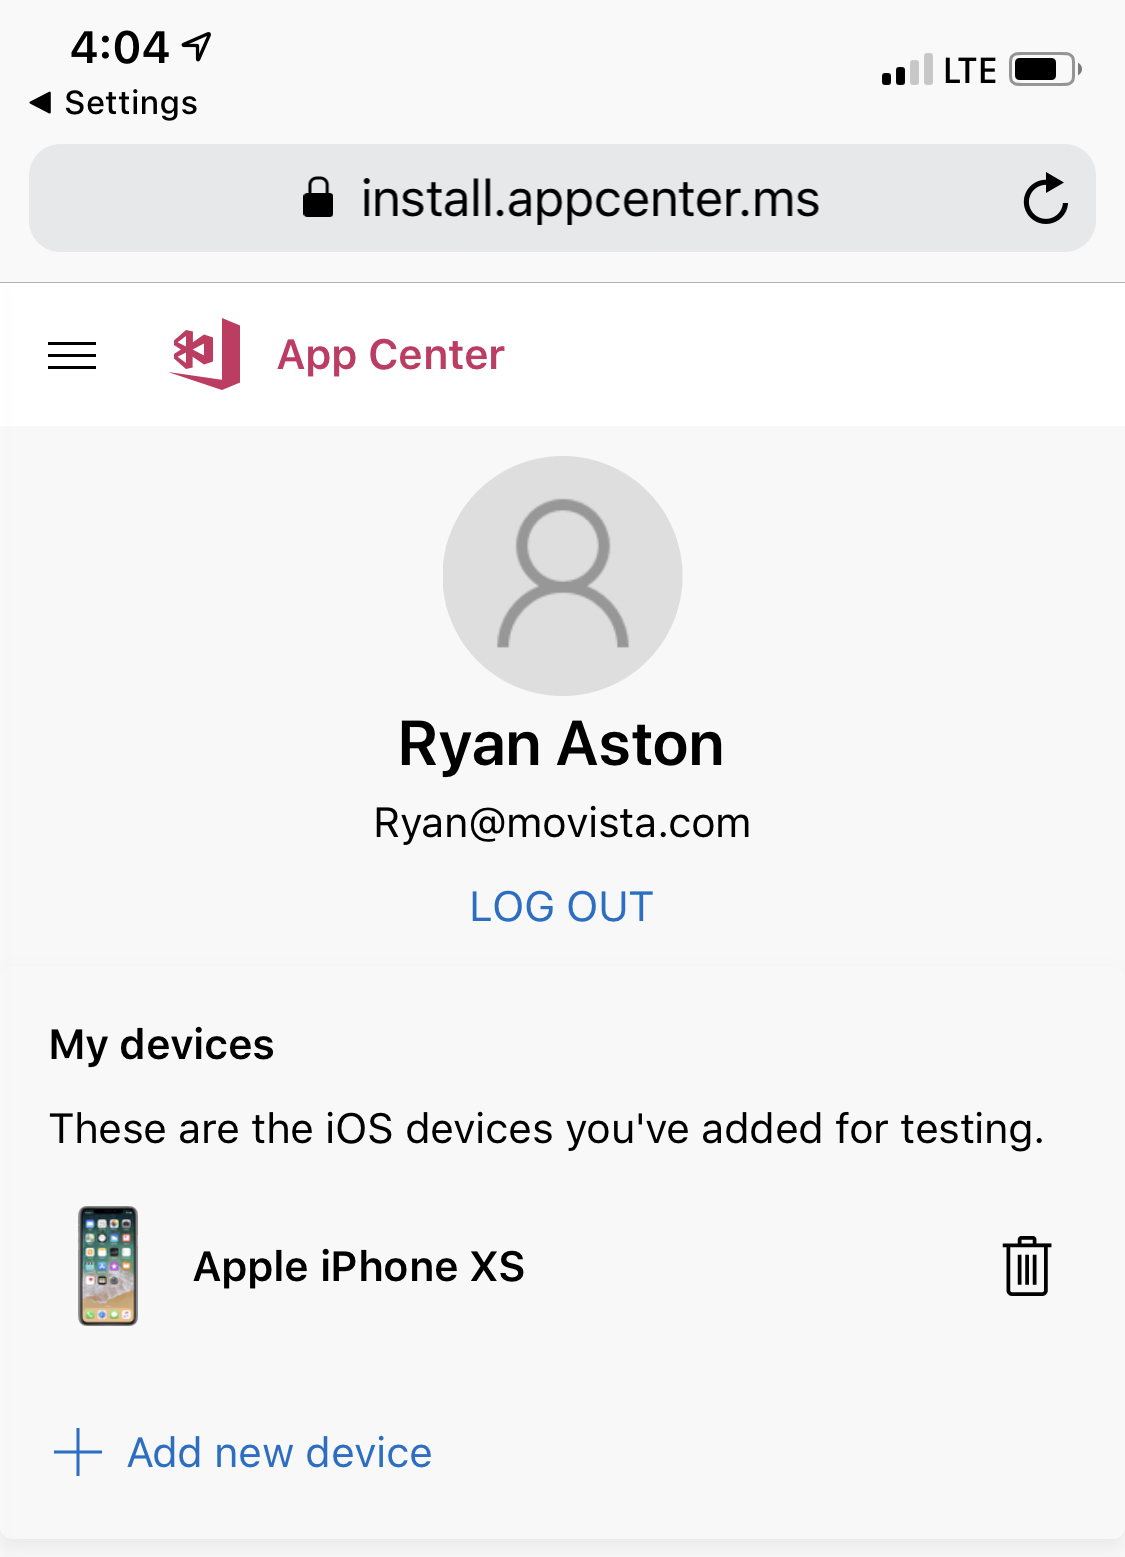 Cannot install App Center Profile on iPhone XS (iOS 12 3 1